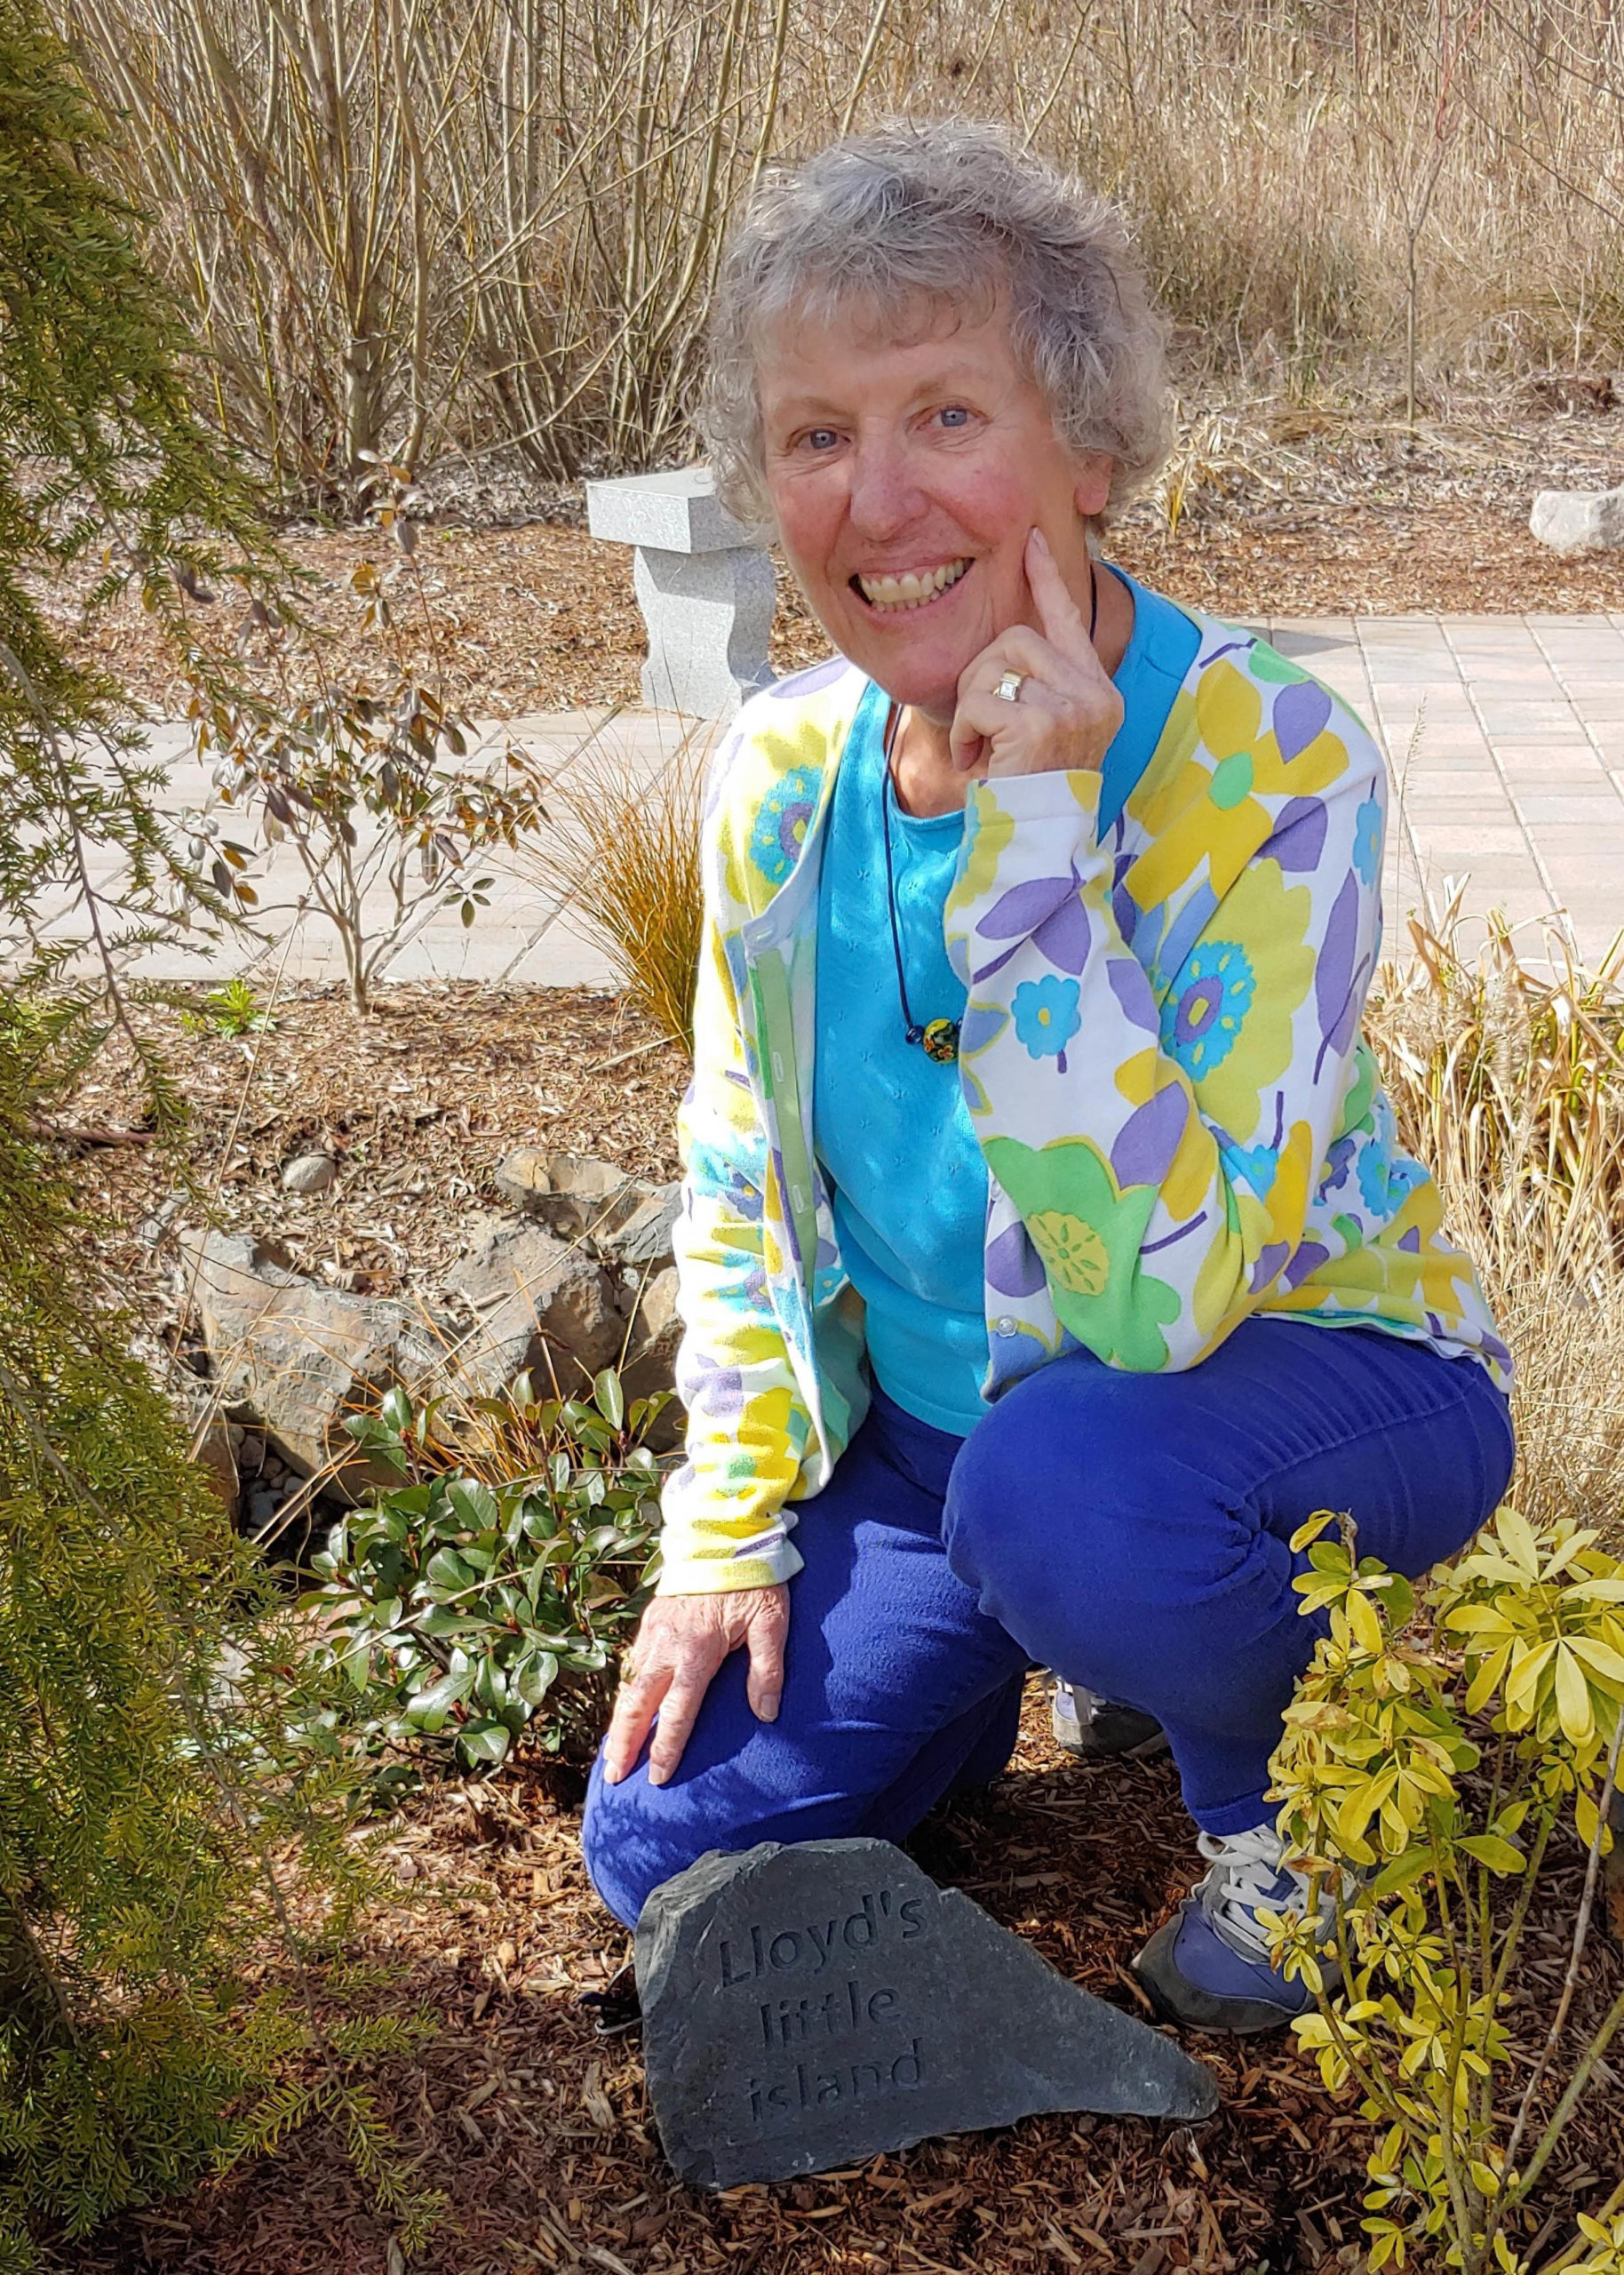 Betty DeWerf with her husband's memorial rock